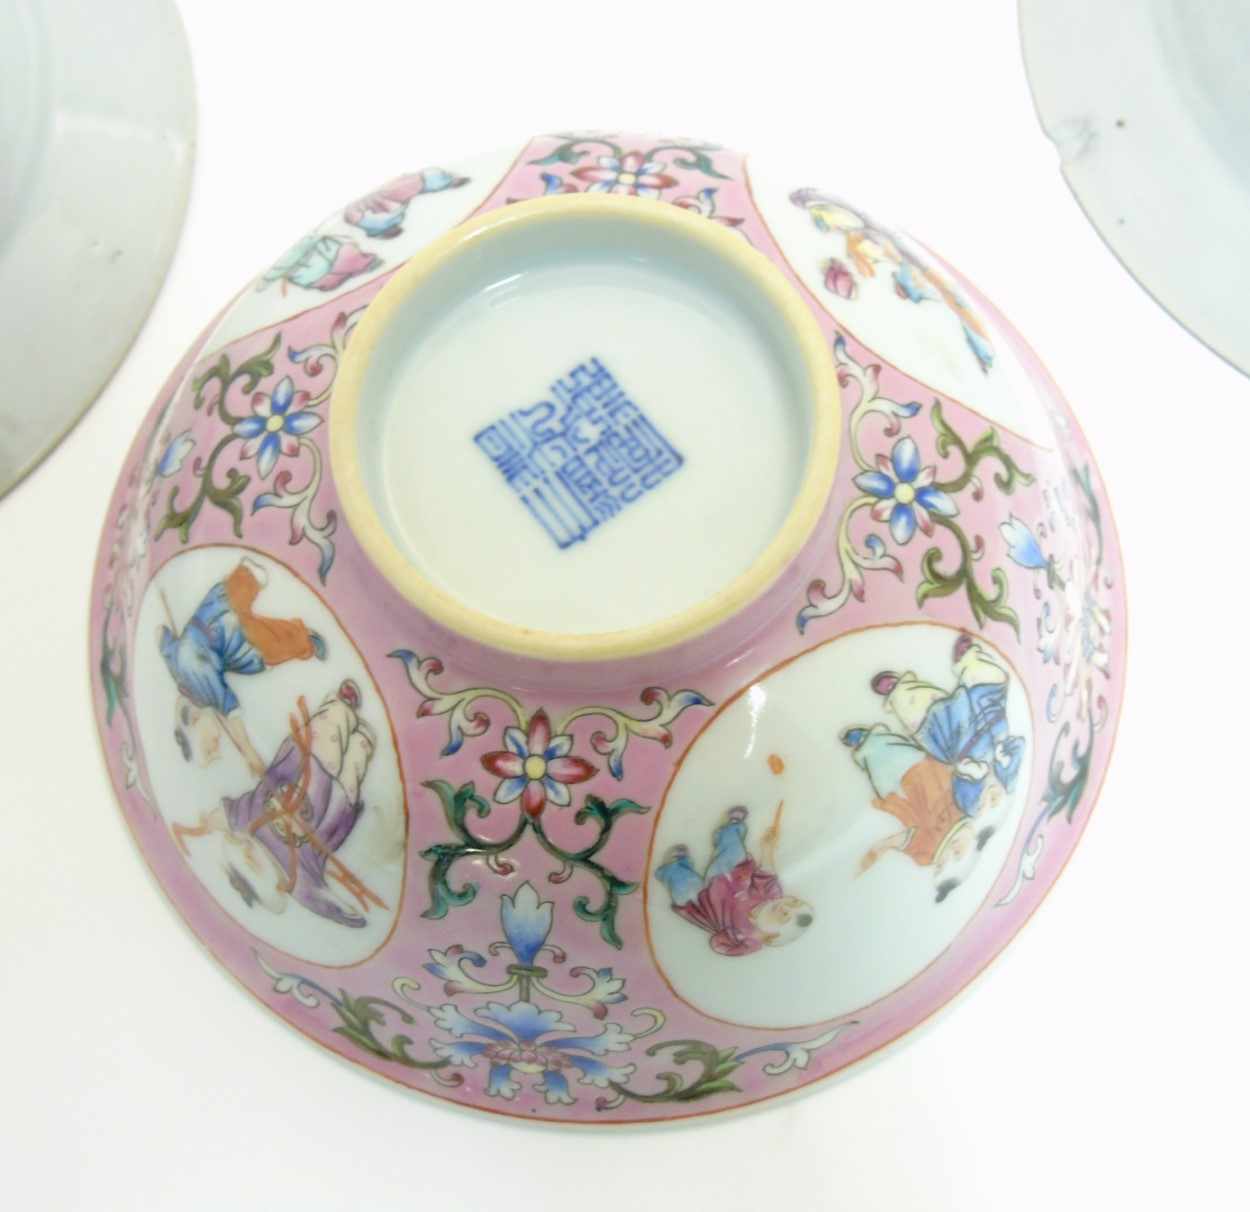 Lot 20 - A quantity of Chinese ceramics comprising a plate with scalloped rim depicting a bird and butterfly